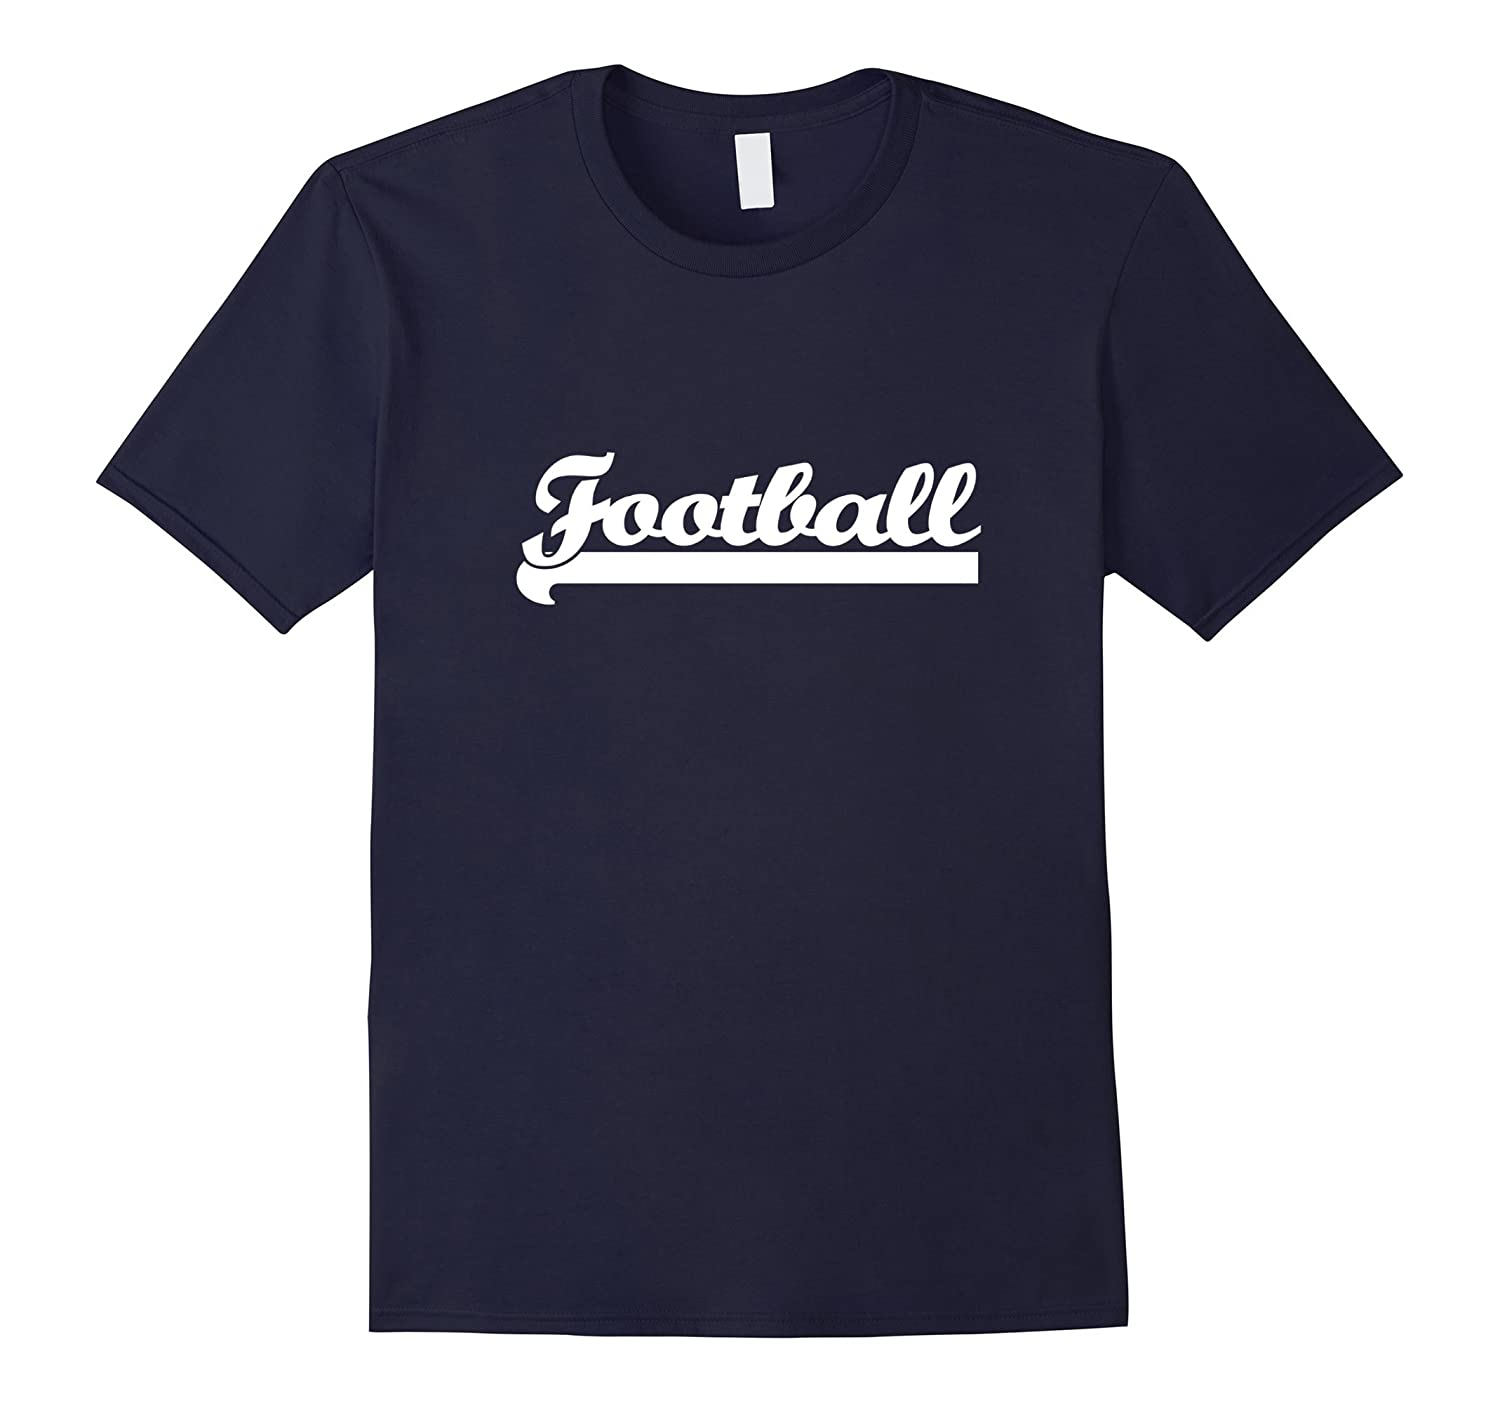 Football - Simple White Design 2-BN